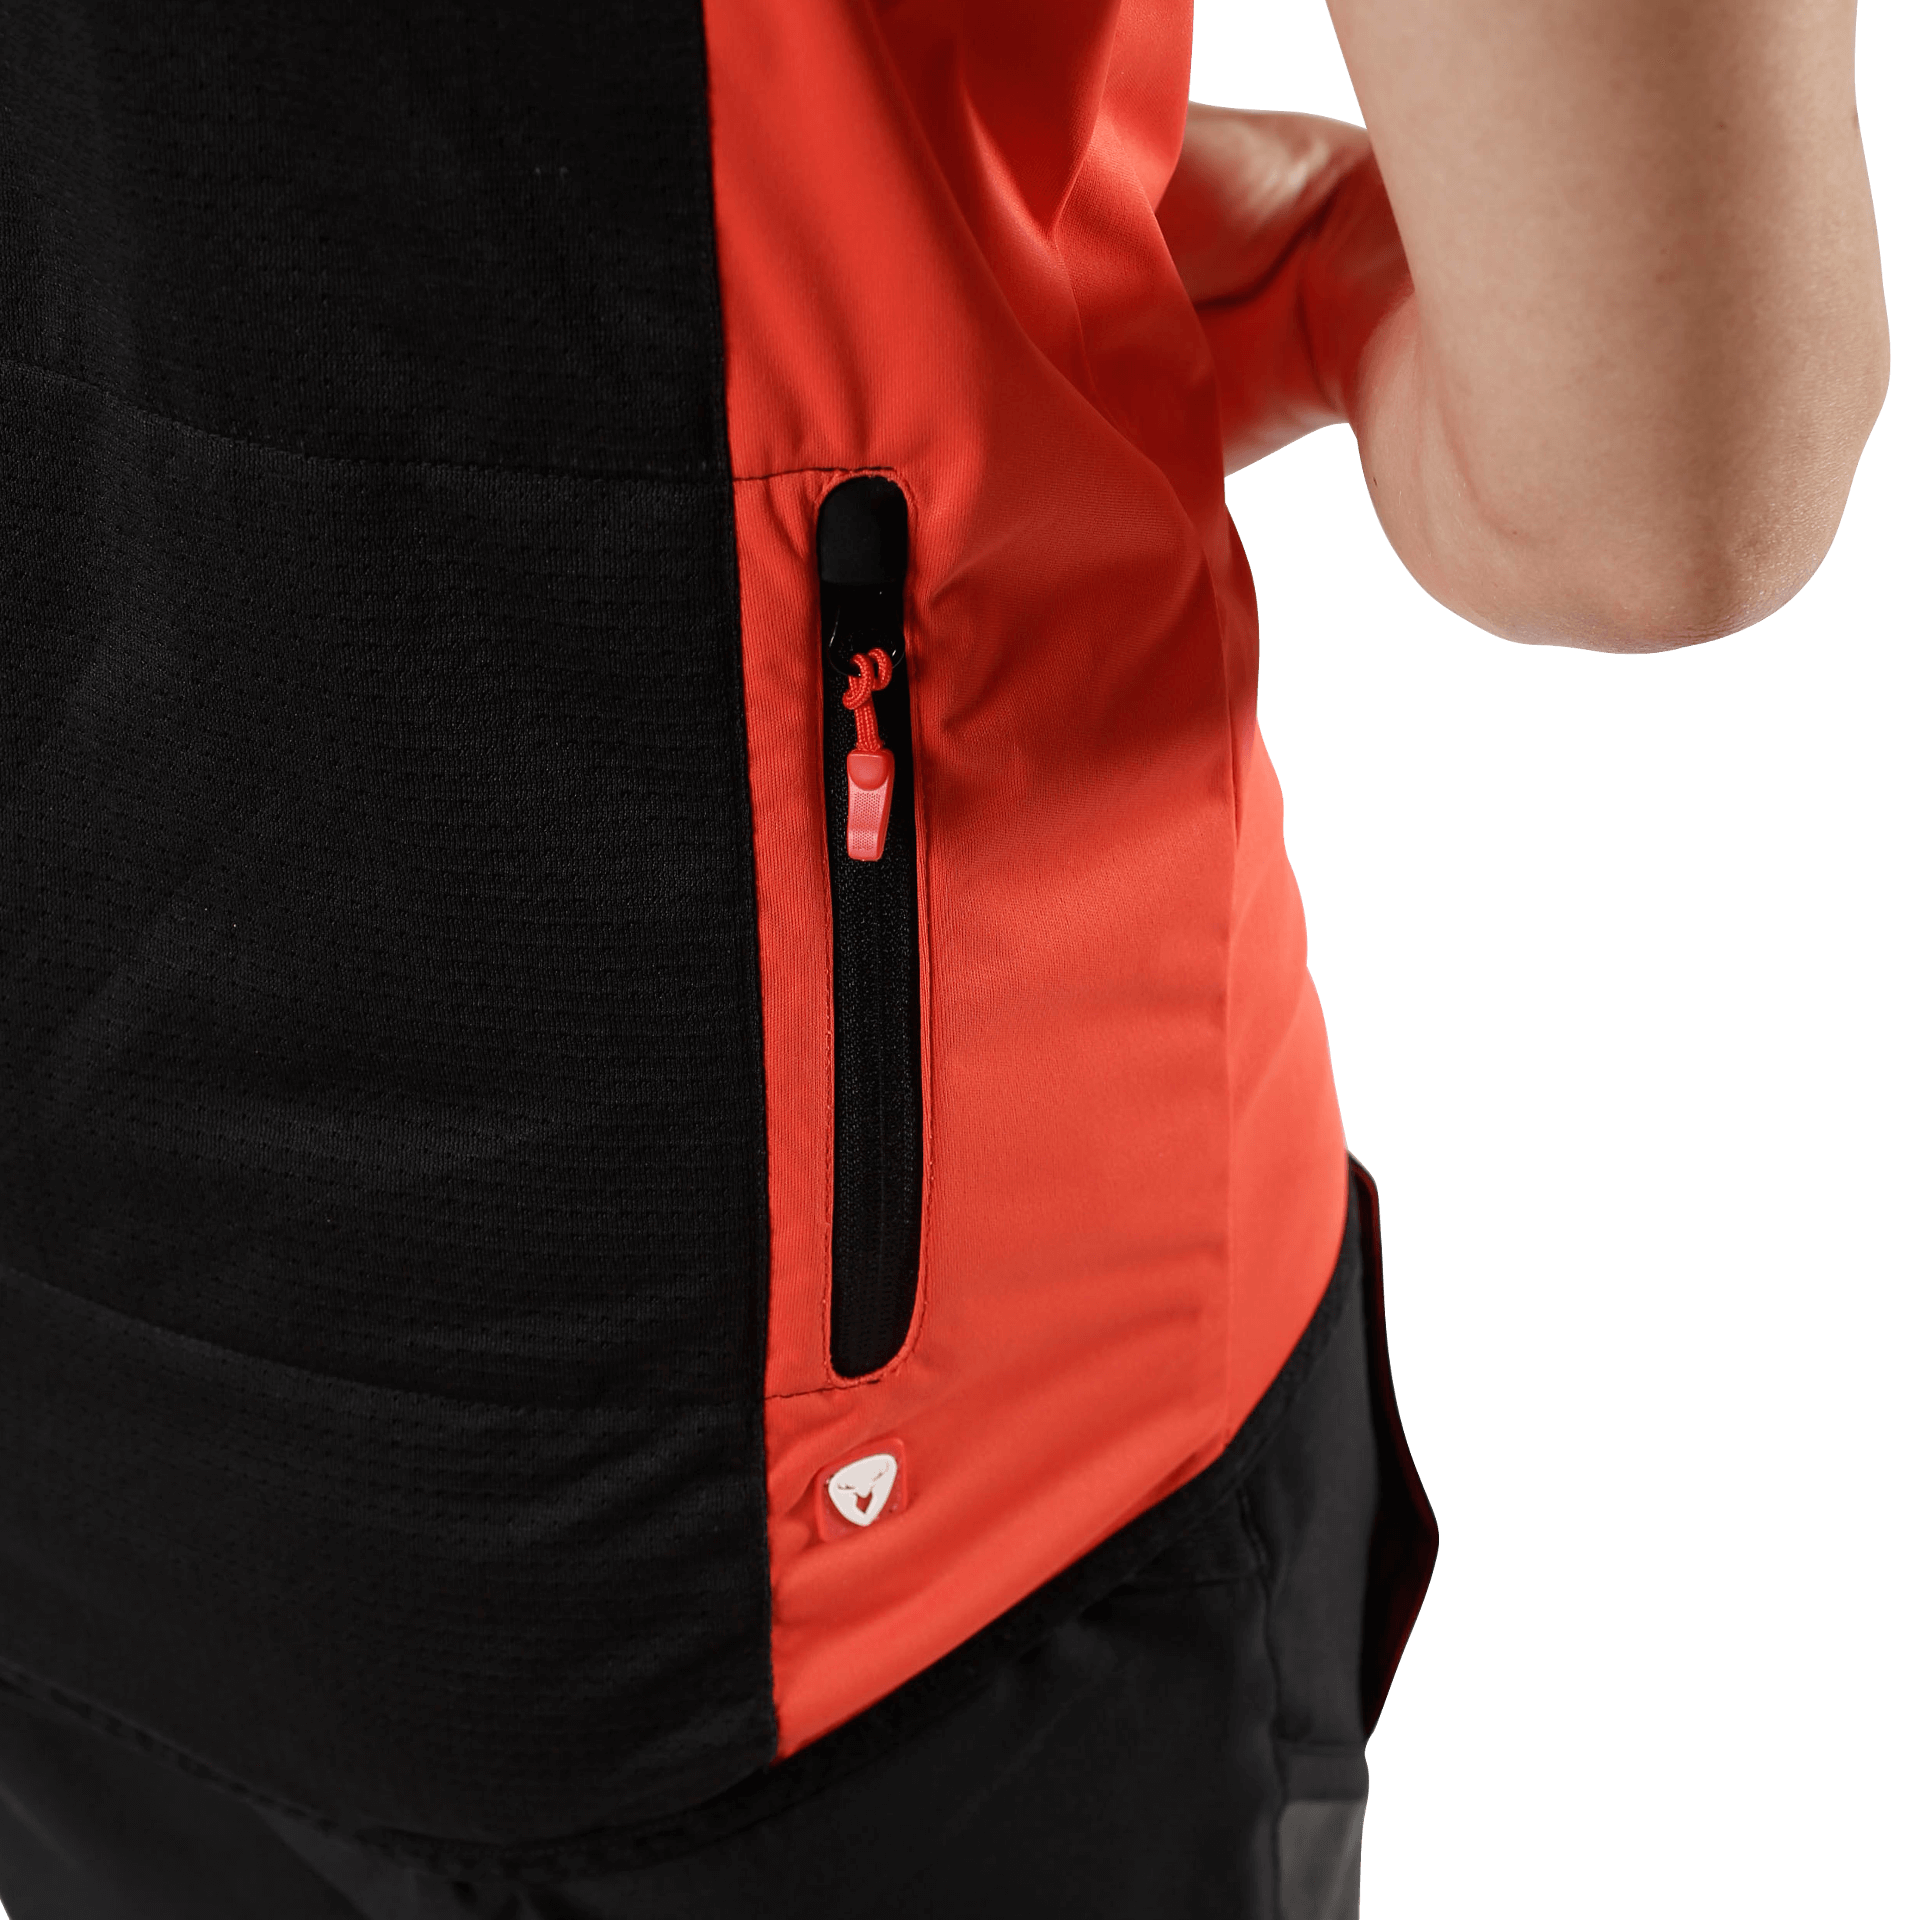 RCD SOFTSHELL BODYWARMER, HOT RED - hot red - S - RCD SOFTSHELL BODYWARMER, HOT RED - hot red - S